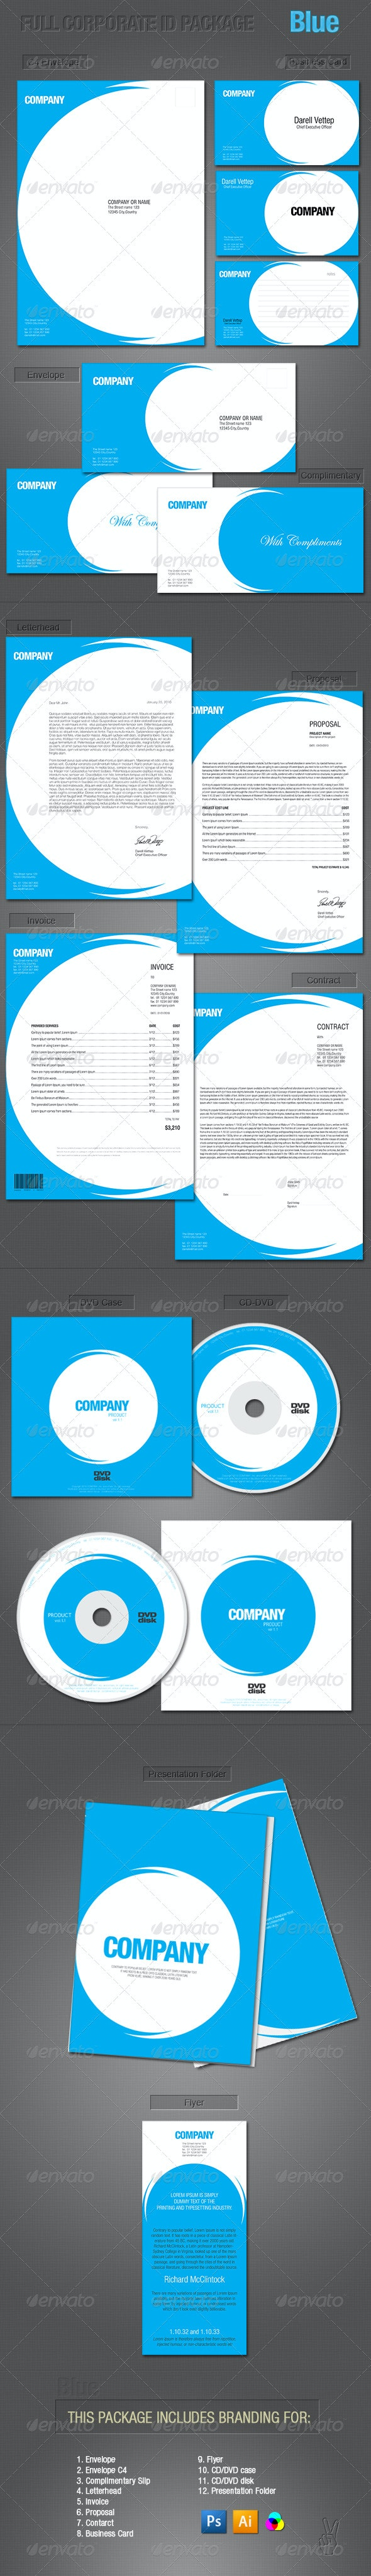 FULL CORPORATE ID PACKAGE - BLUE - Stationery Print Templates